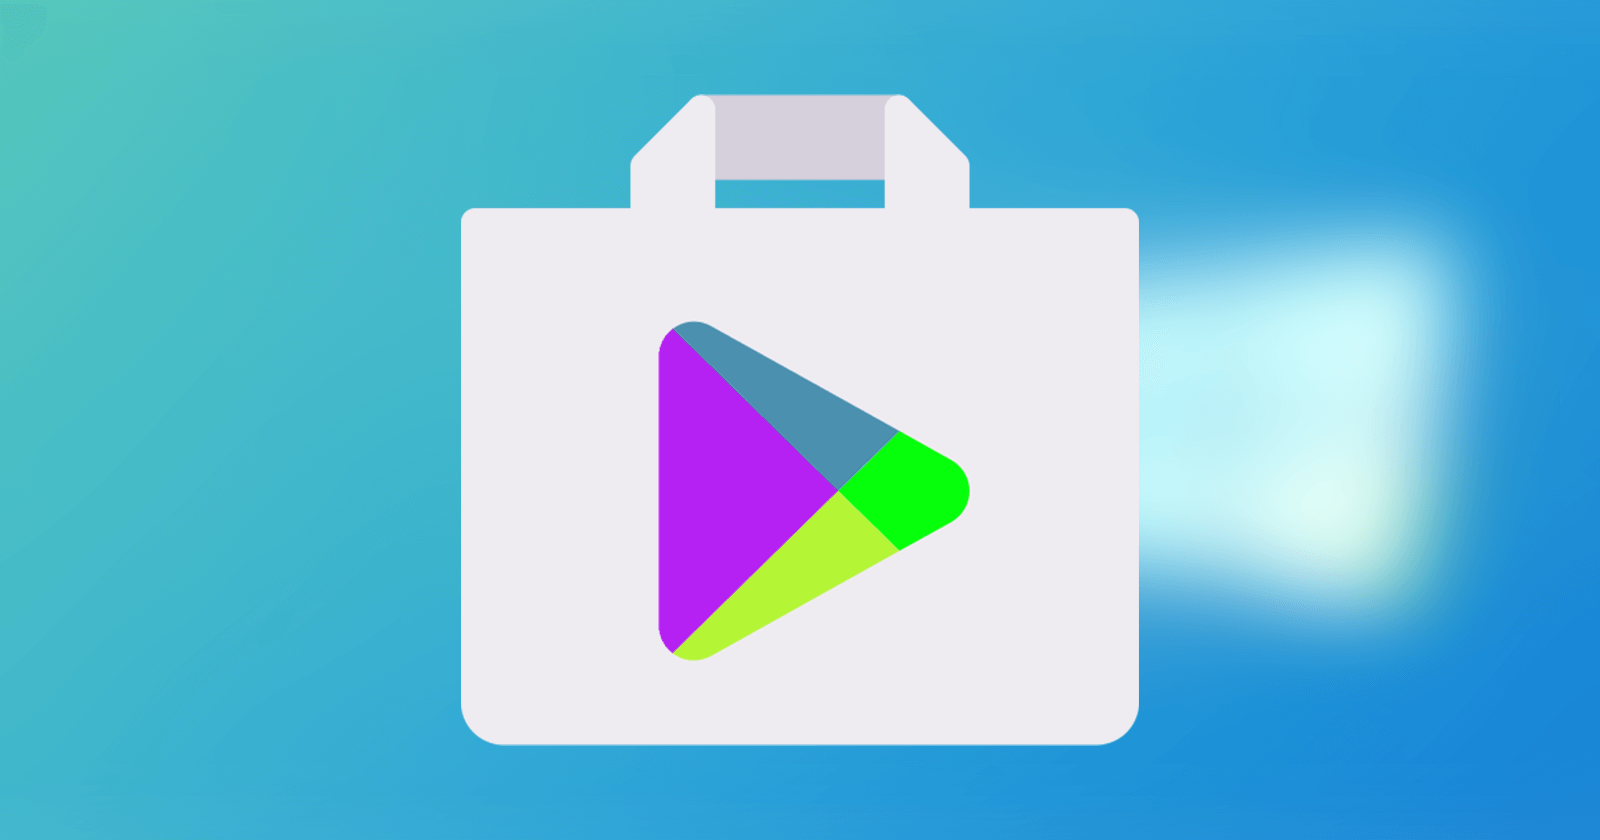 color play store icon 291220